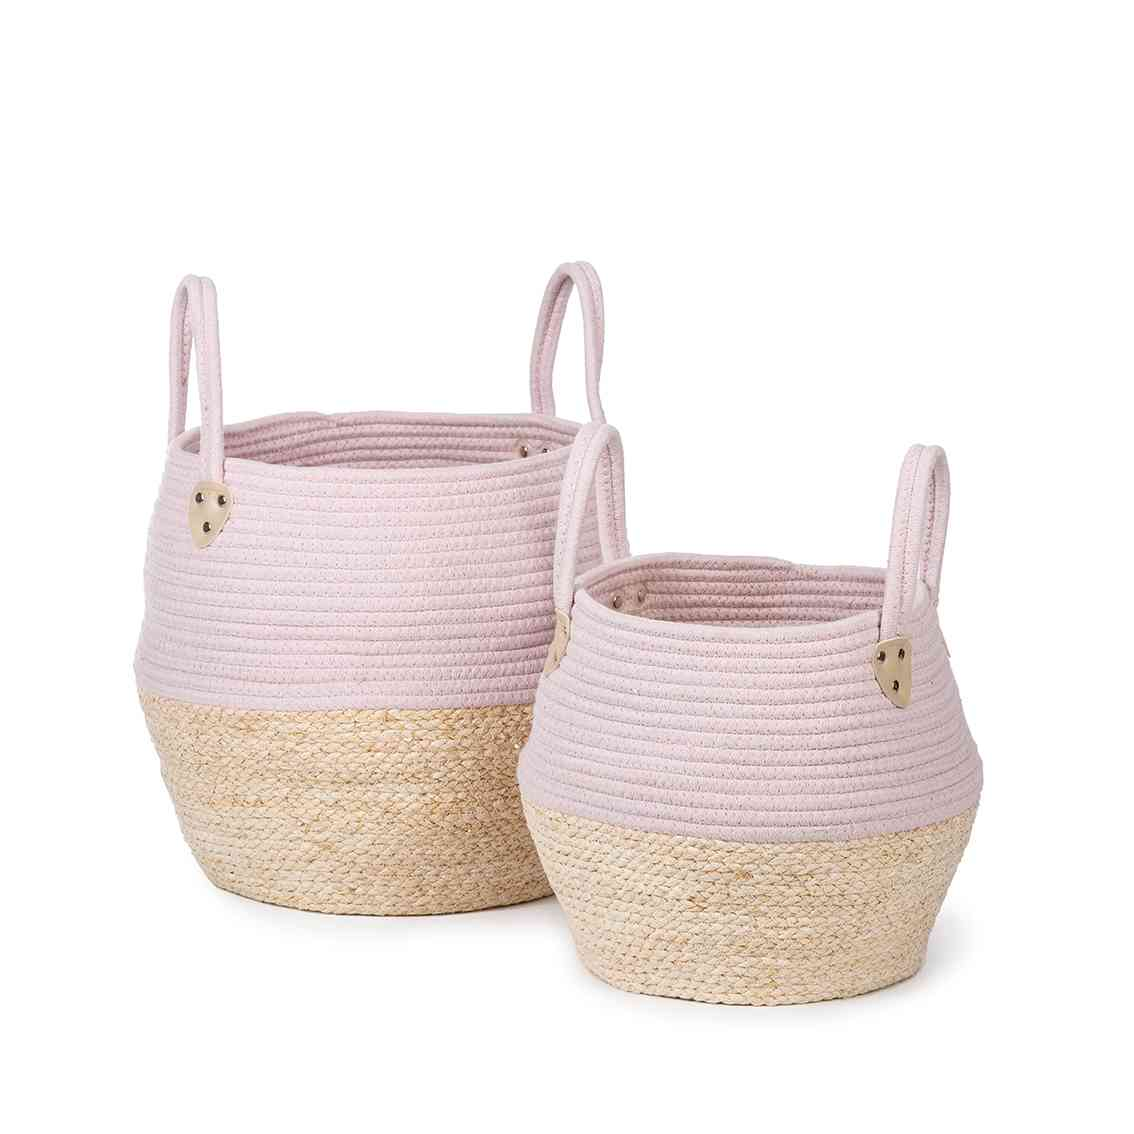 Cord and wicker basket set Pink